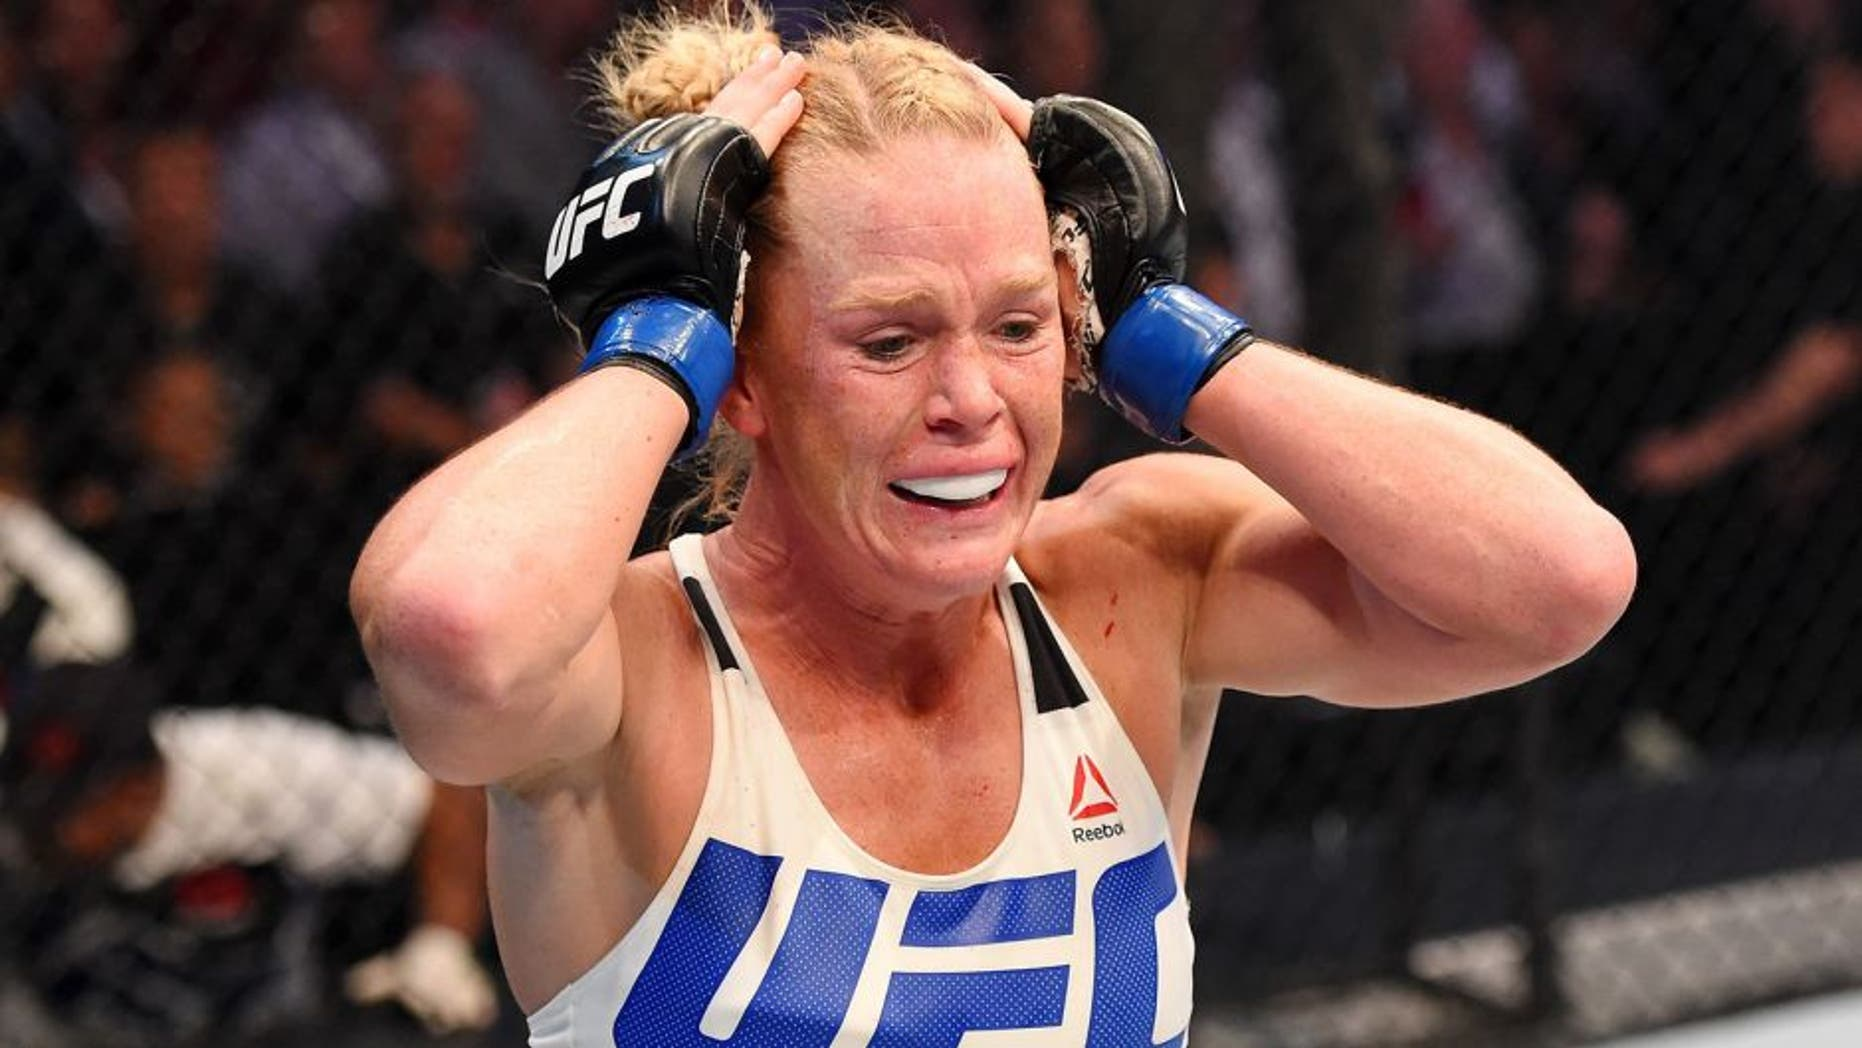 MELBOURNE, AUSTRALIA - NOVEMBER 15: Holly Holm celebrates her second round KO (headkick and punches) over Ronda Rousey (not pictured) in their UFC women's bantamweight championship bout during the UFC 193 event at Etihad Stadium on November 15, 2015 in Melbourne, Australia. (Photo by Josh Hedges/Zuffa LLC/Zuffa LLC via Getty Images)